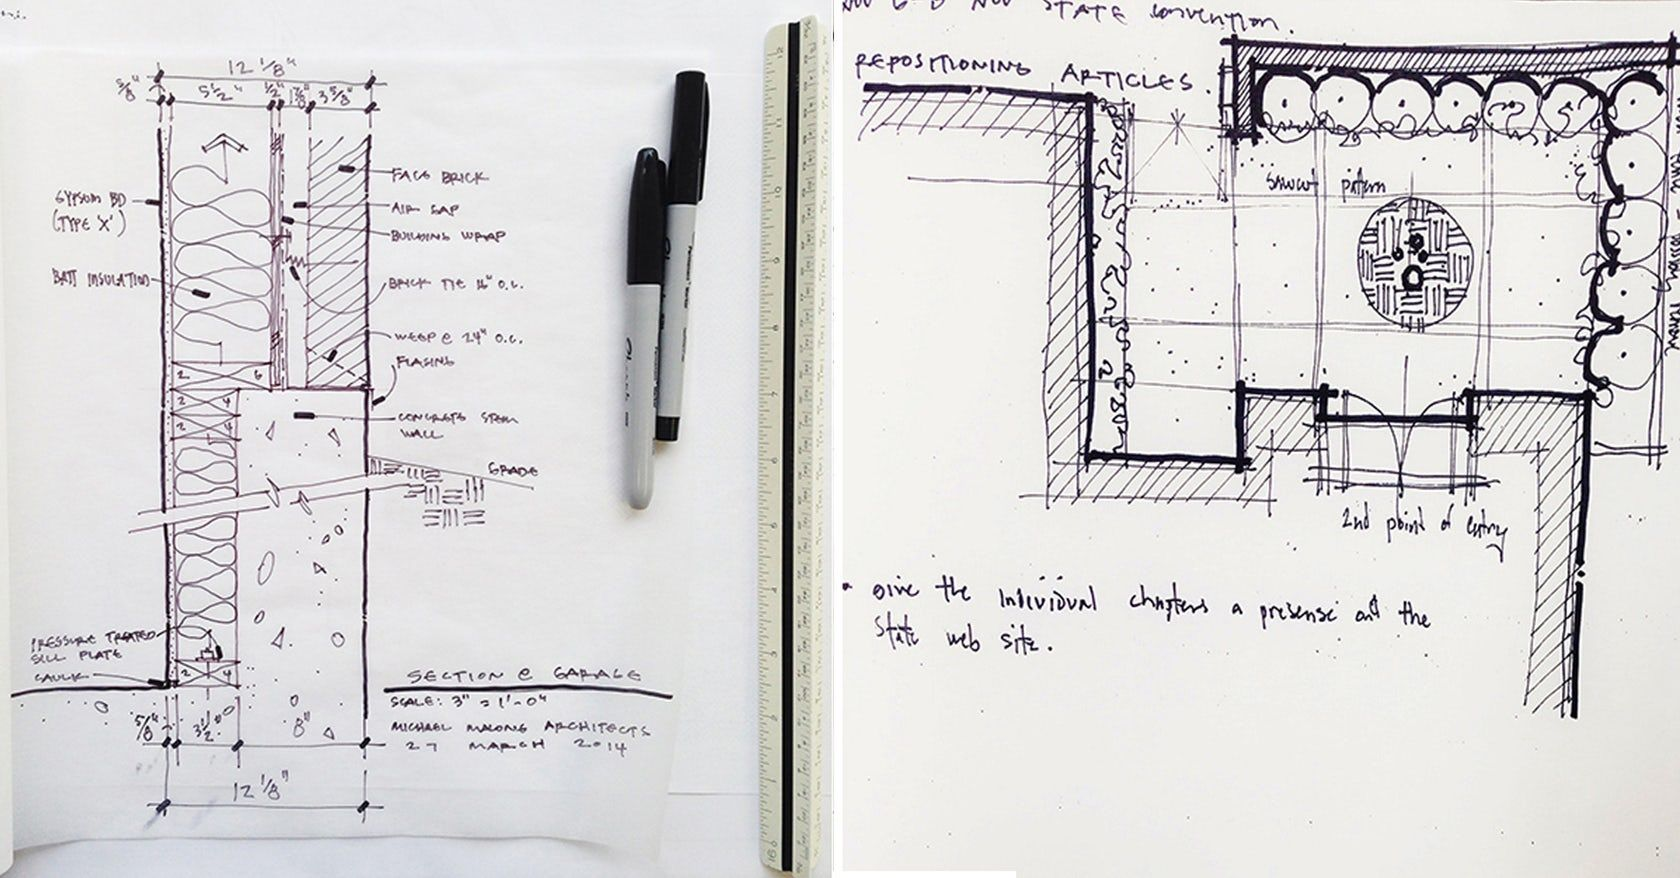 Bob Borson of 'Life of an Architect' offers some handy tips that should improve your architectural sketches.